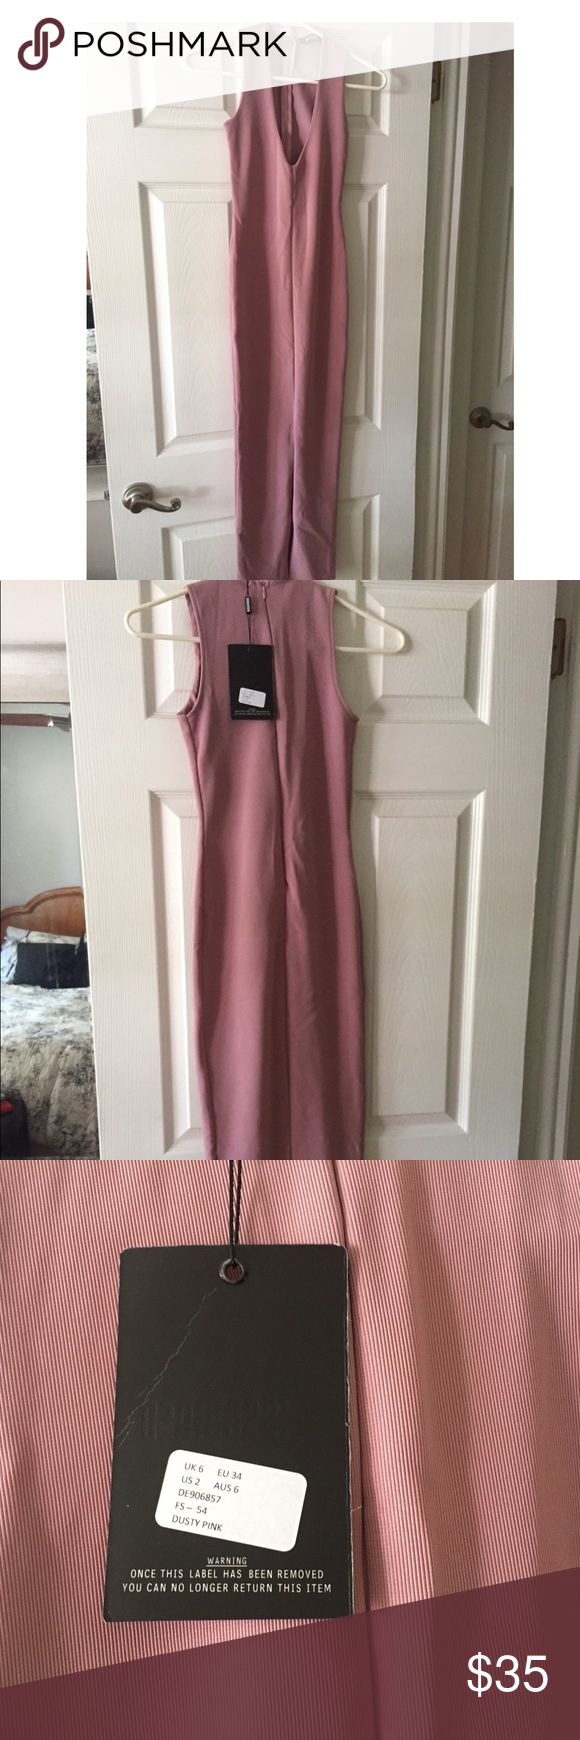 NWT Missguided Midi Dress Dusty pink midi dress with front slit and plunge neck. Dress is still for sale on website but I missed the return window. Never worn - new with tags. Missguided Dresses Midi